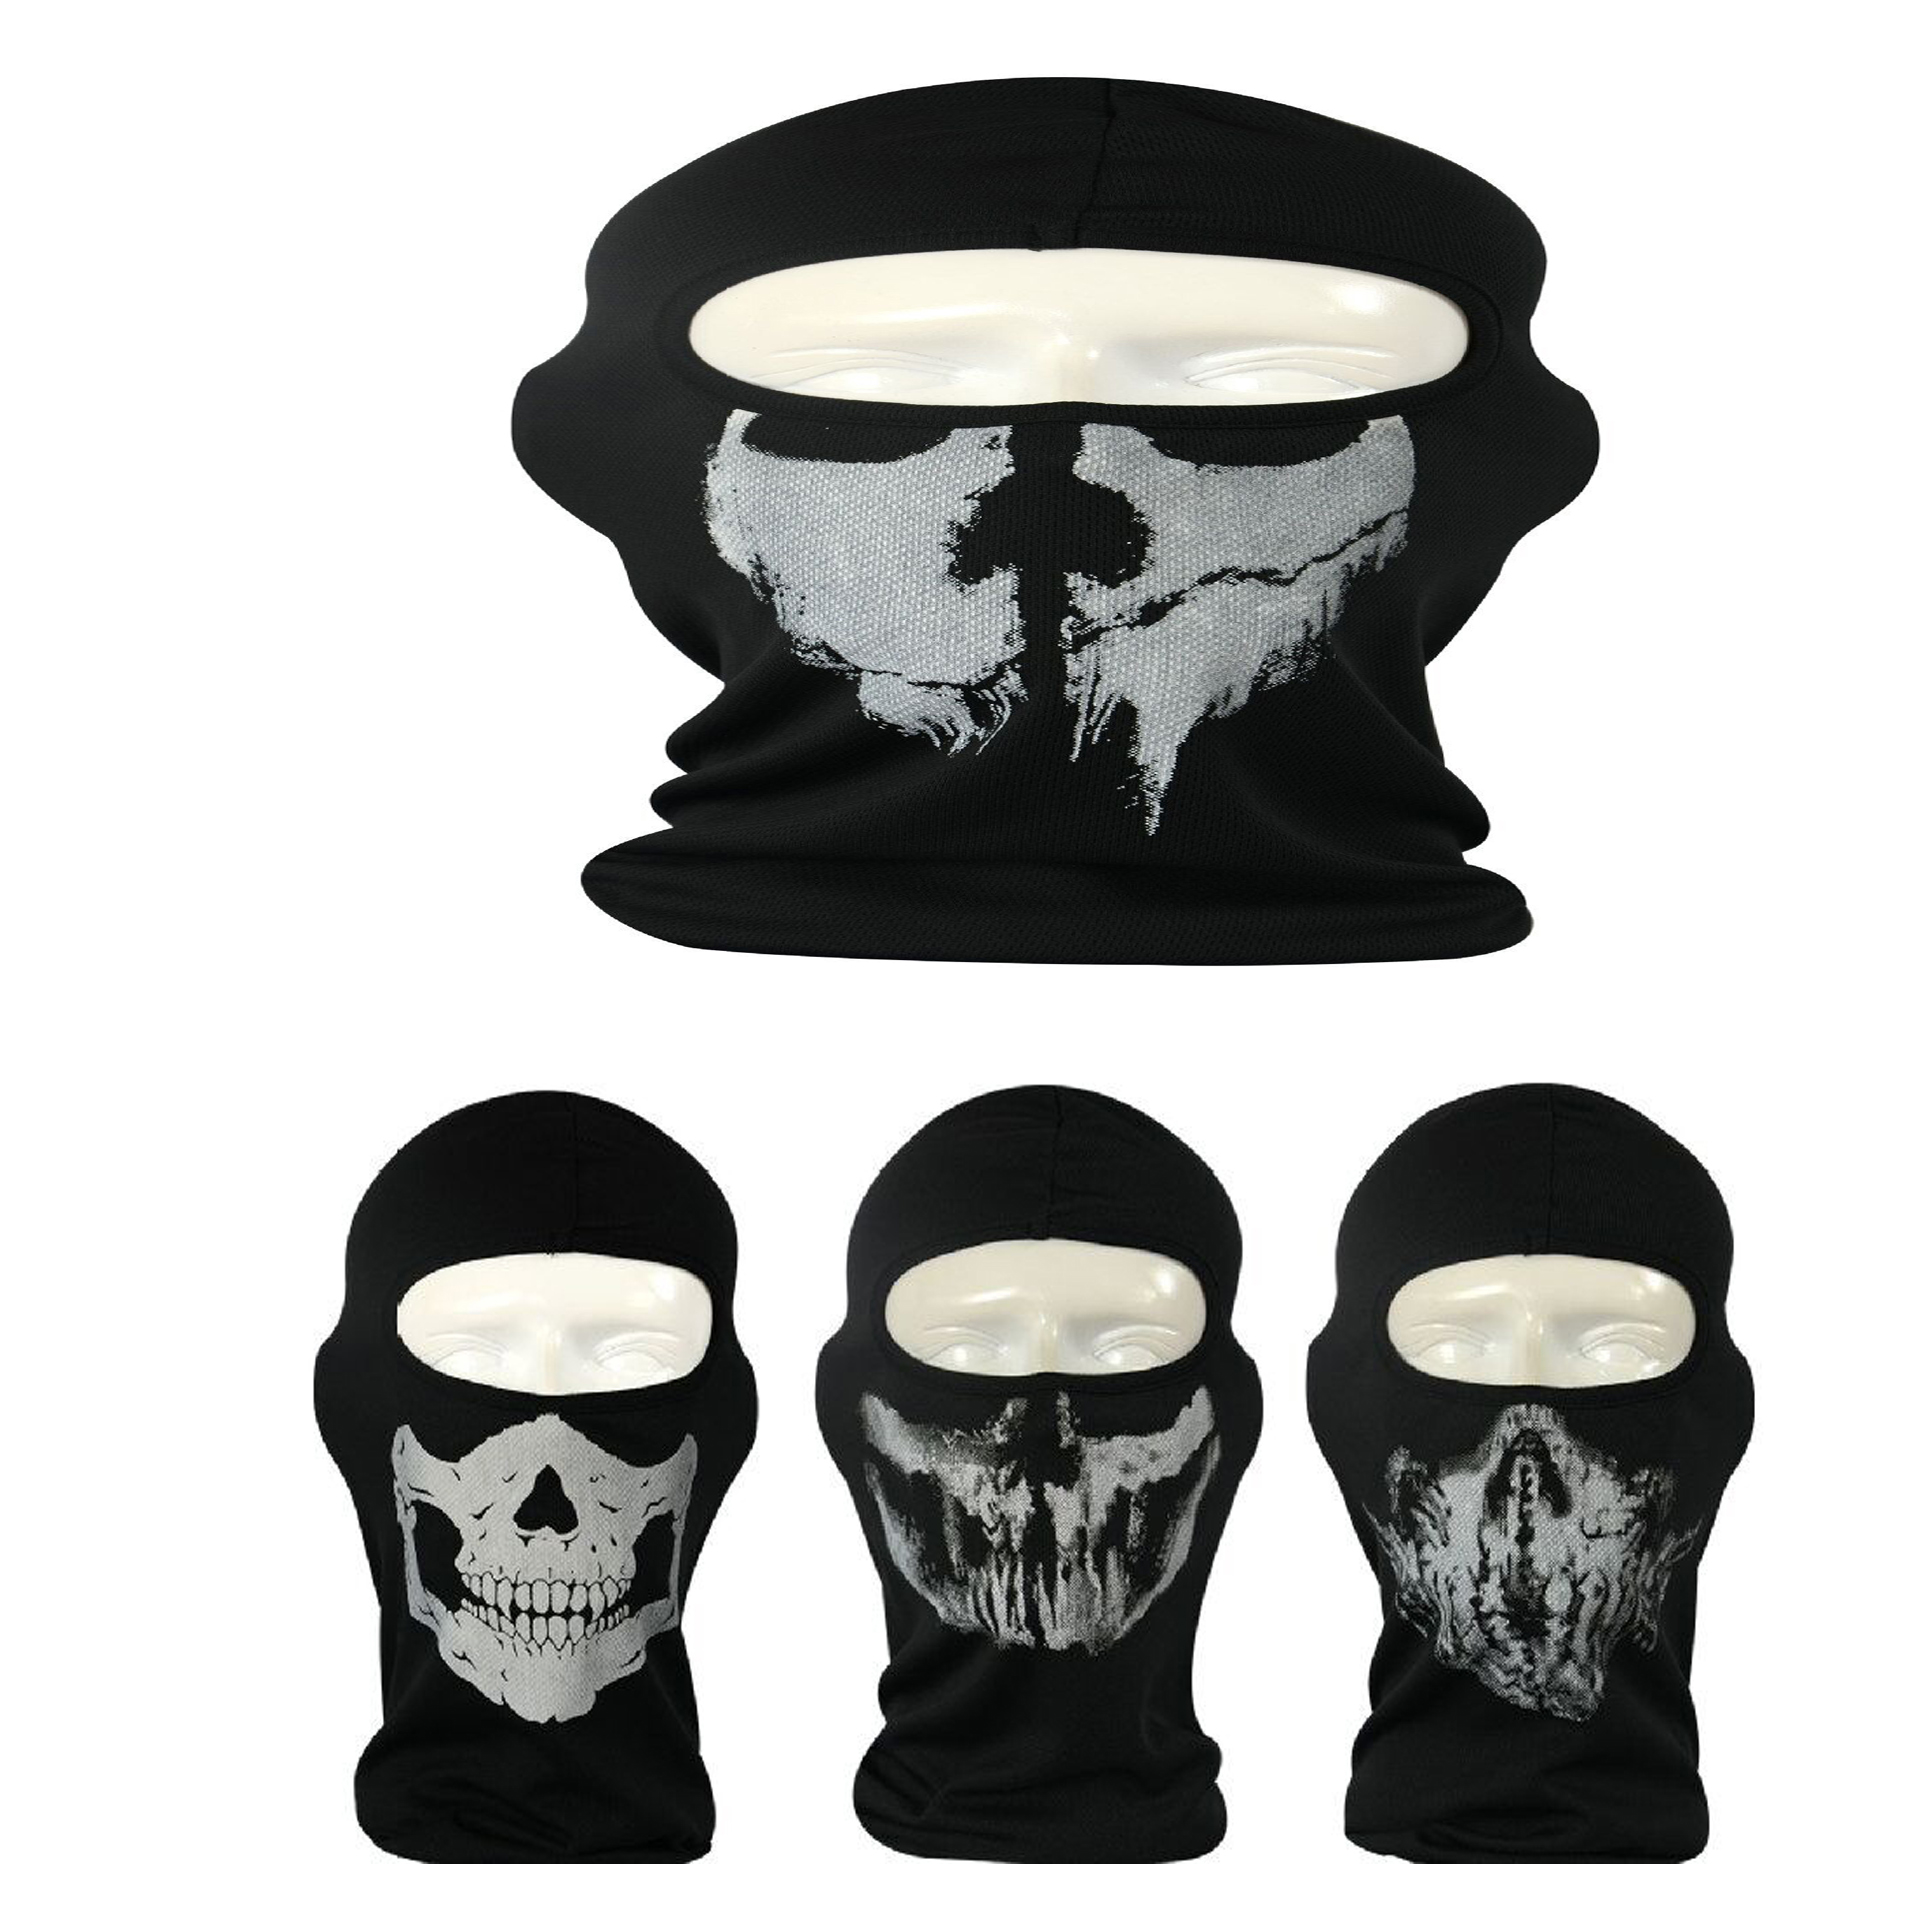 2016 New Cycling Motorcycle skull mask Ride skeleton Stretch Hap Balaclava Hood Cosplay Costume Full Face Masks Free Shipping